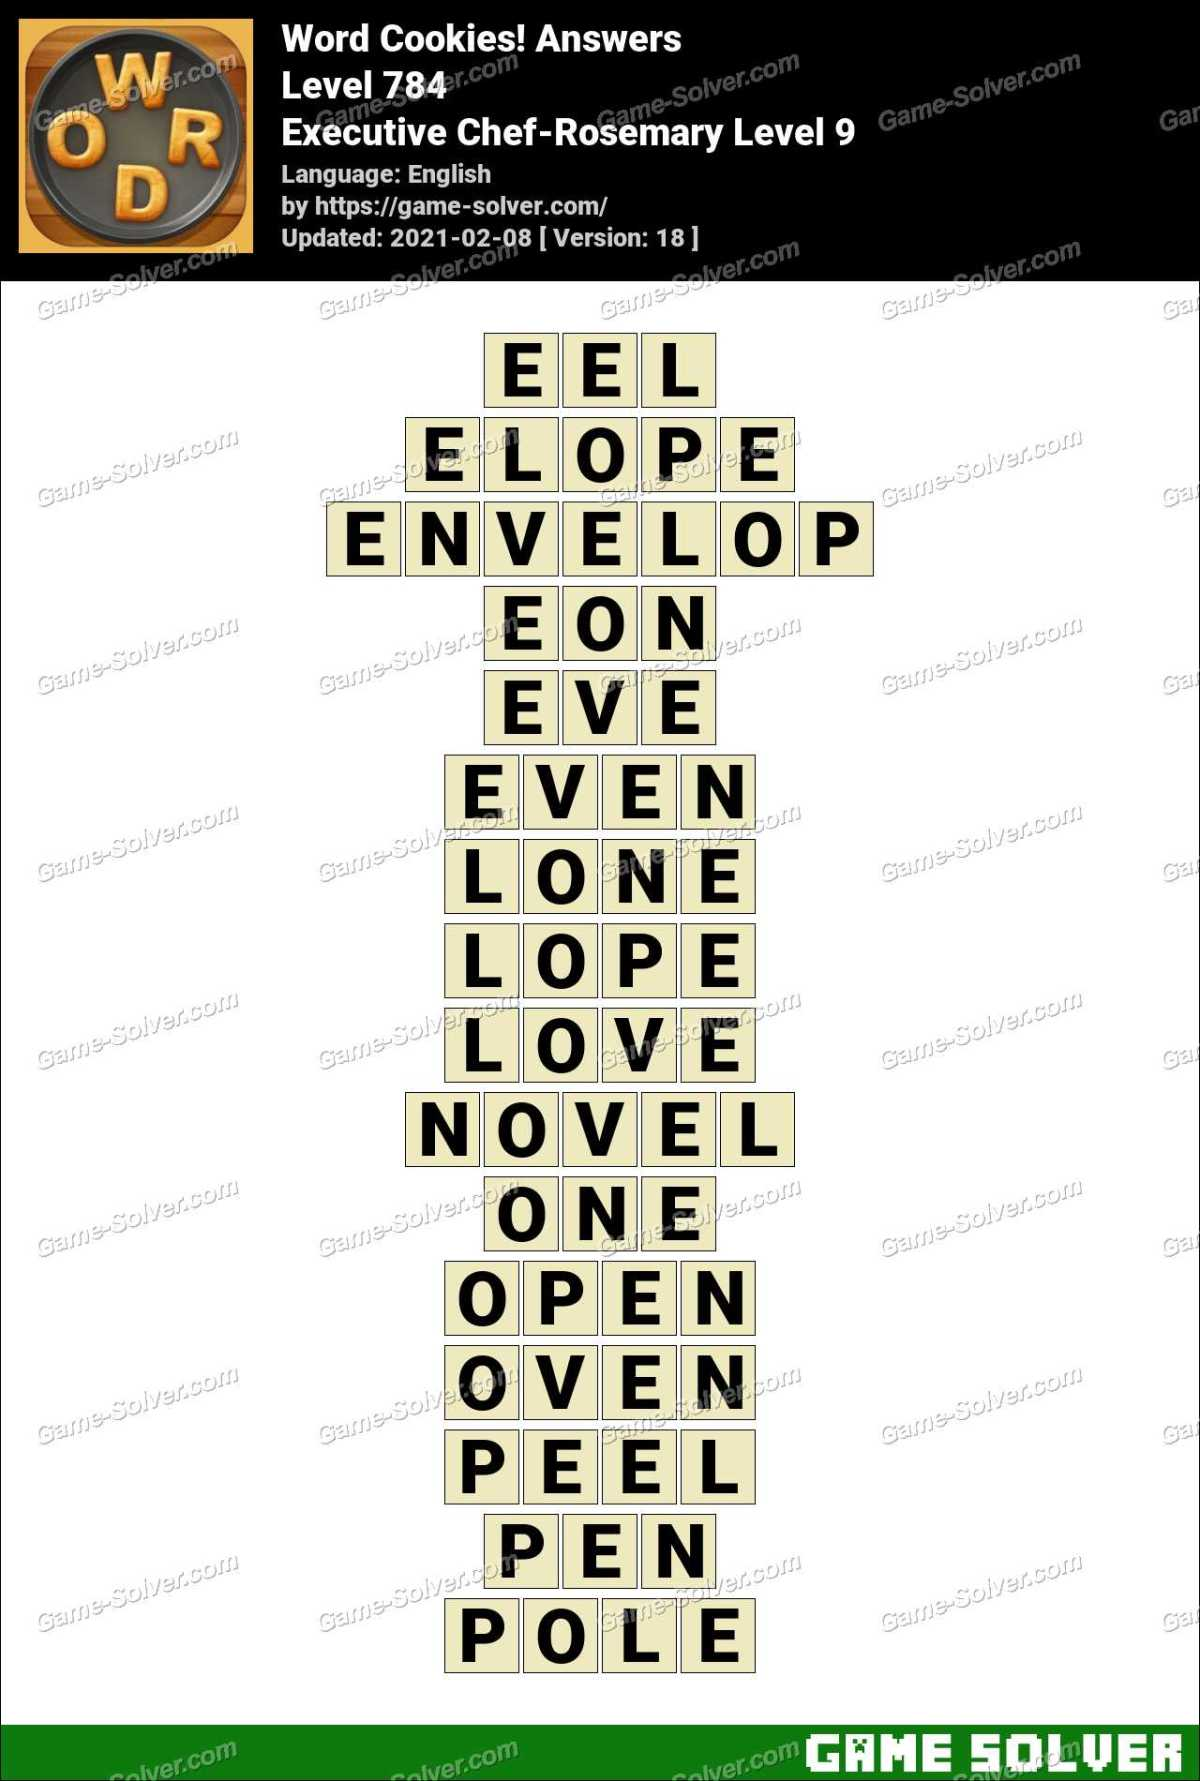 Word Cookies Executive Chef-Rosemary Level 9 Answers